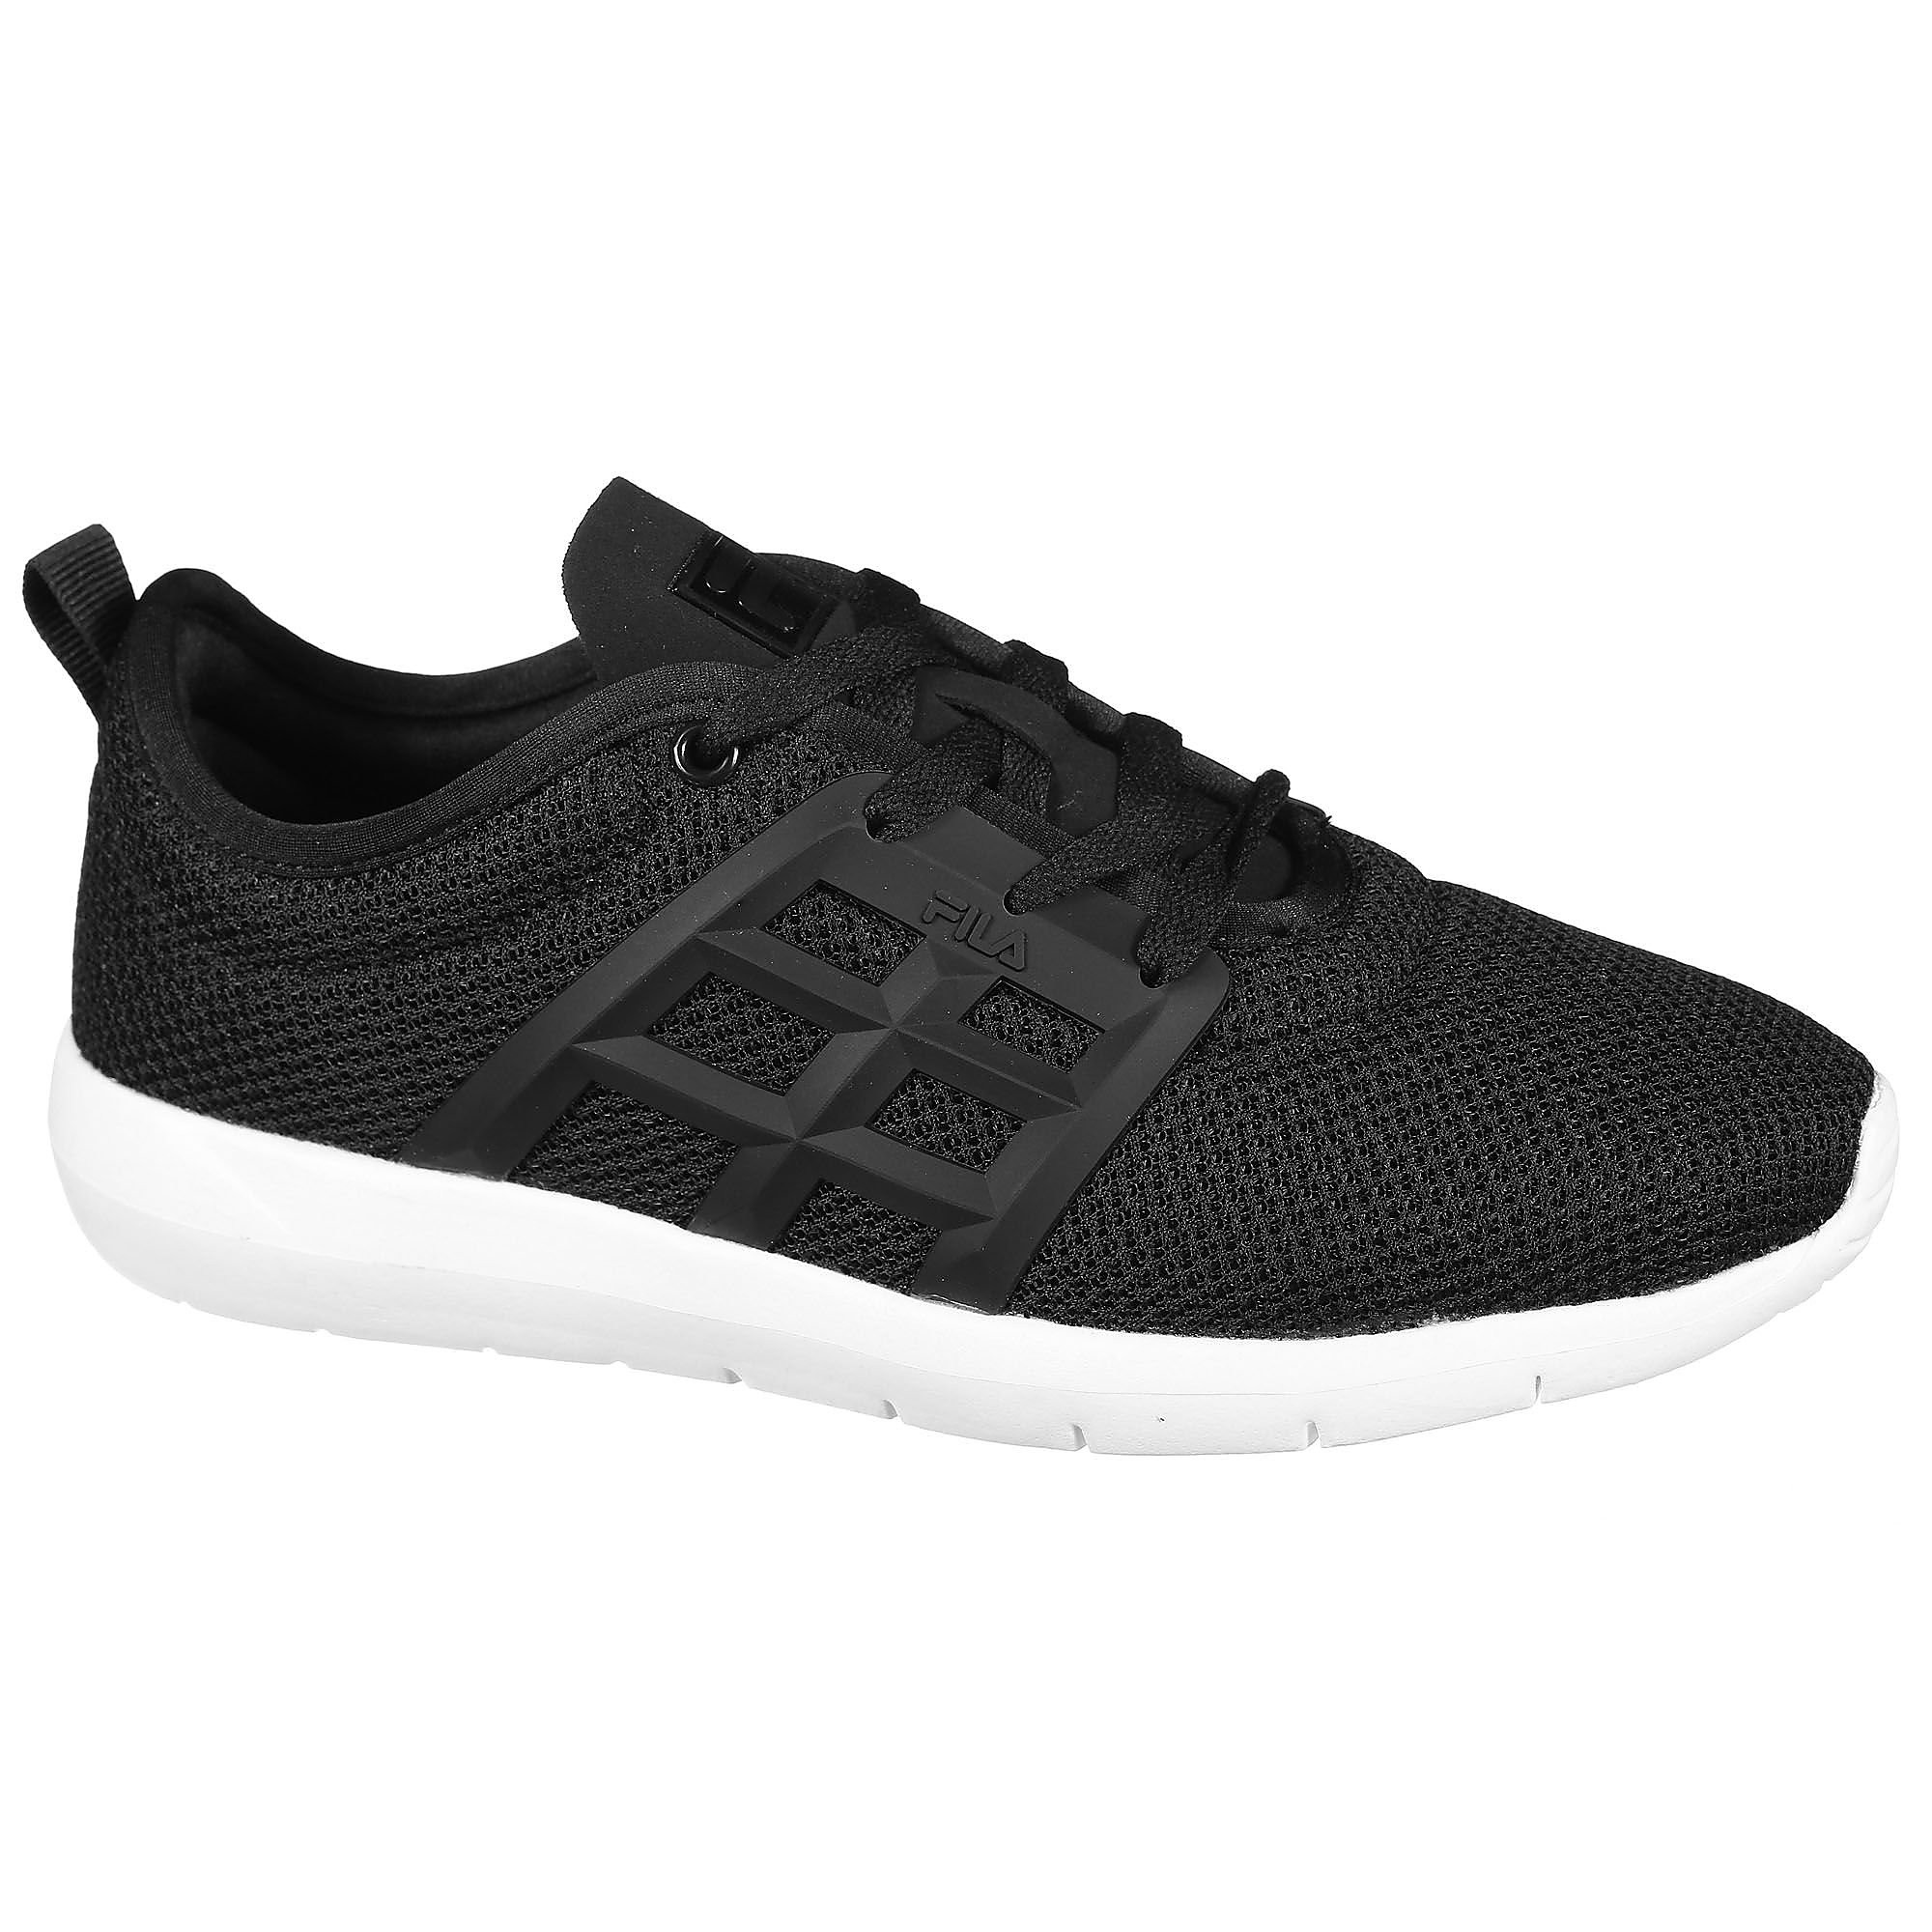 FILA POWERBOLT LOW SNEAKERS ZWART HEREN